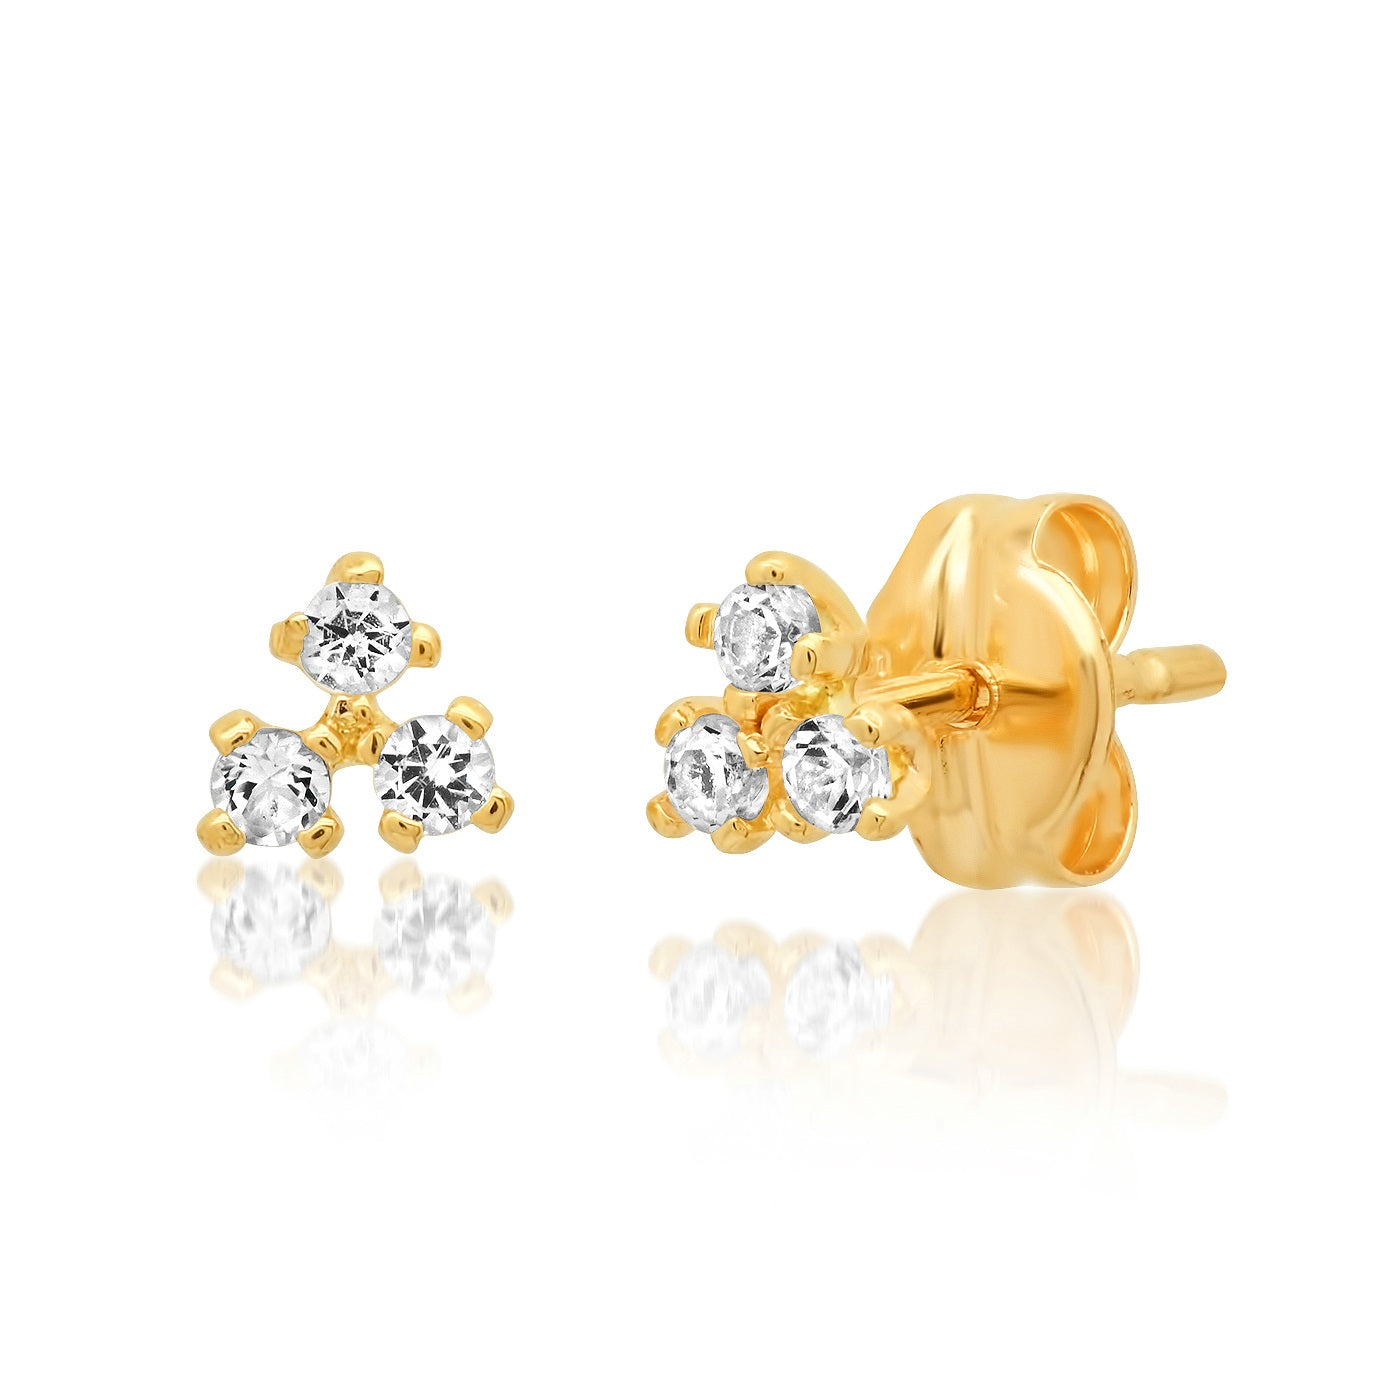 TAI Fine 14K Gold and White Topaz Cluster Earring